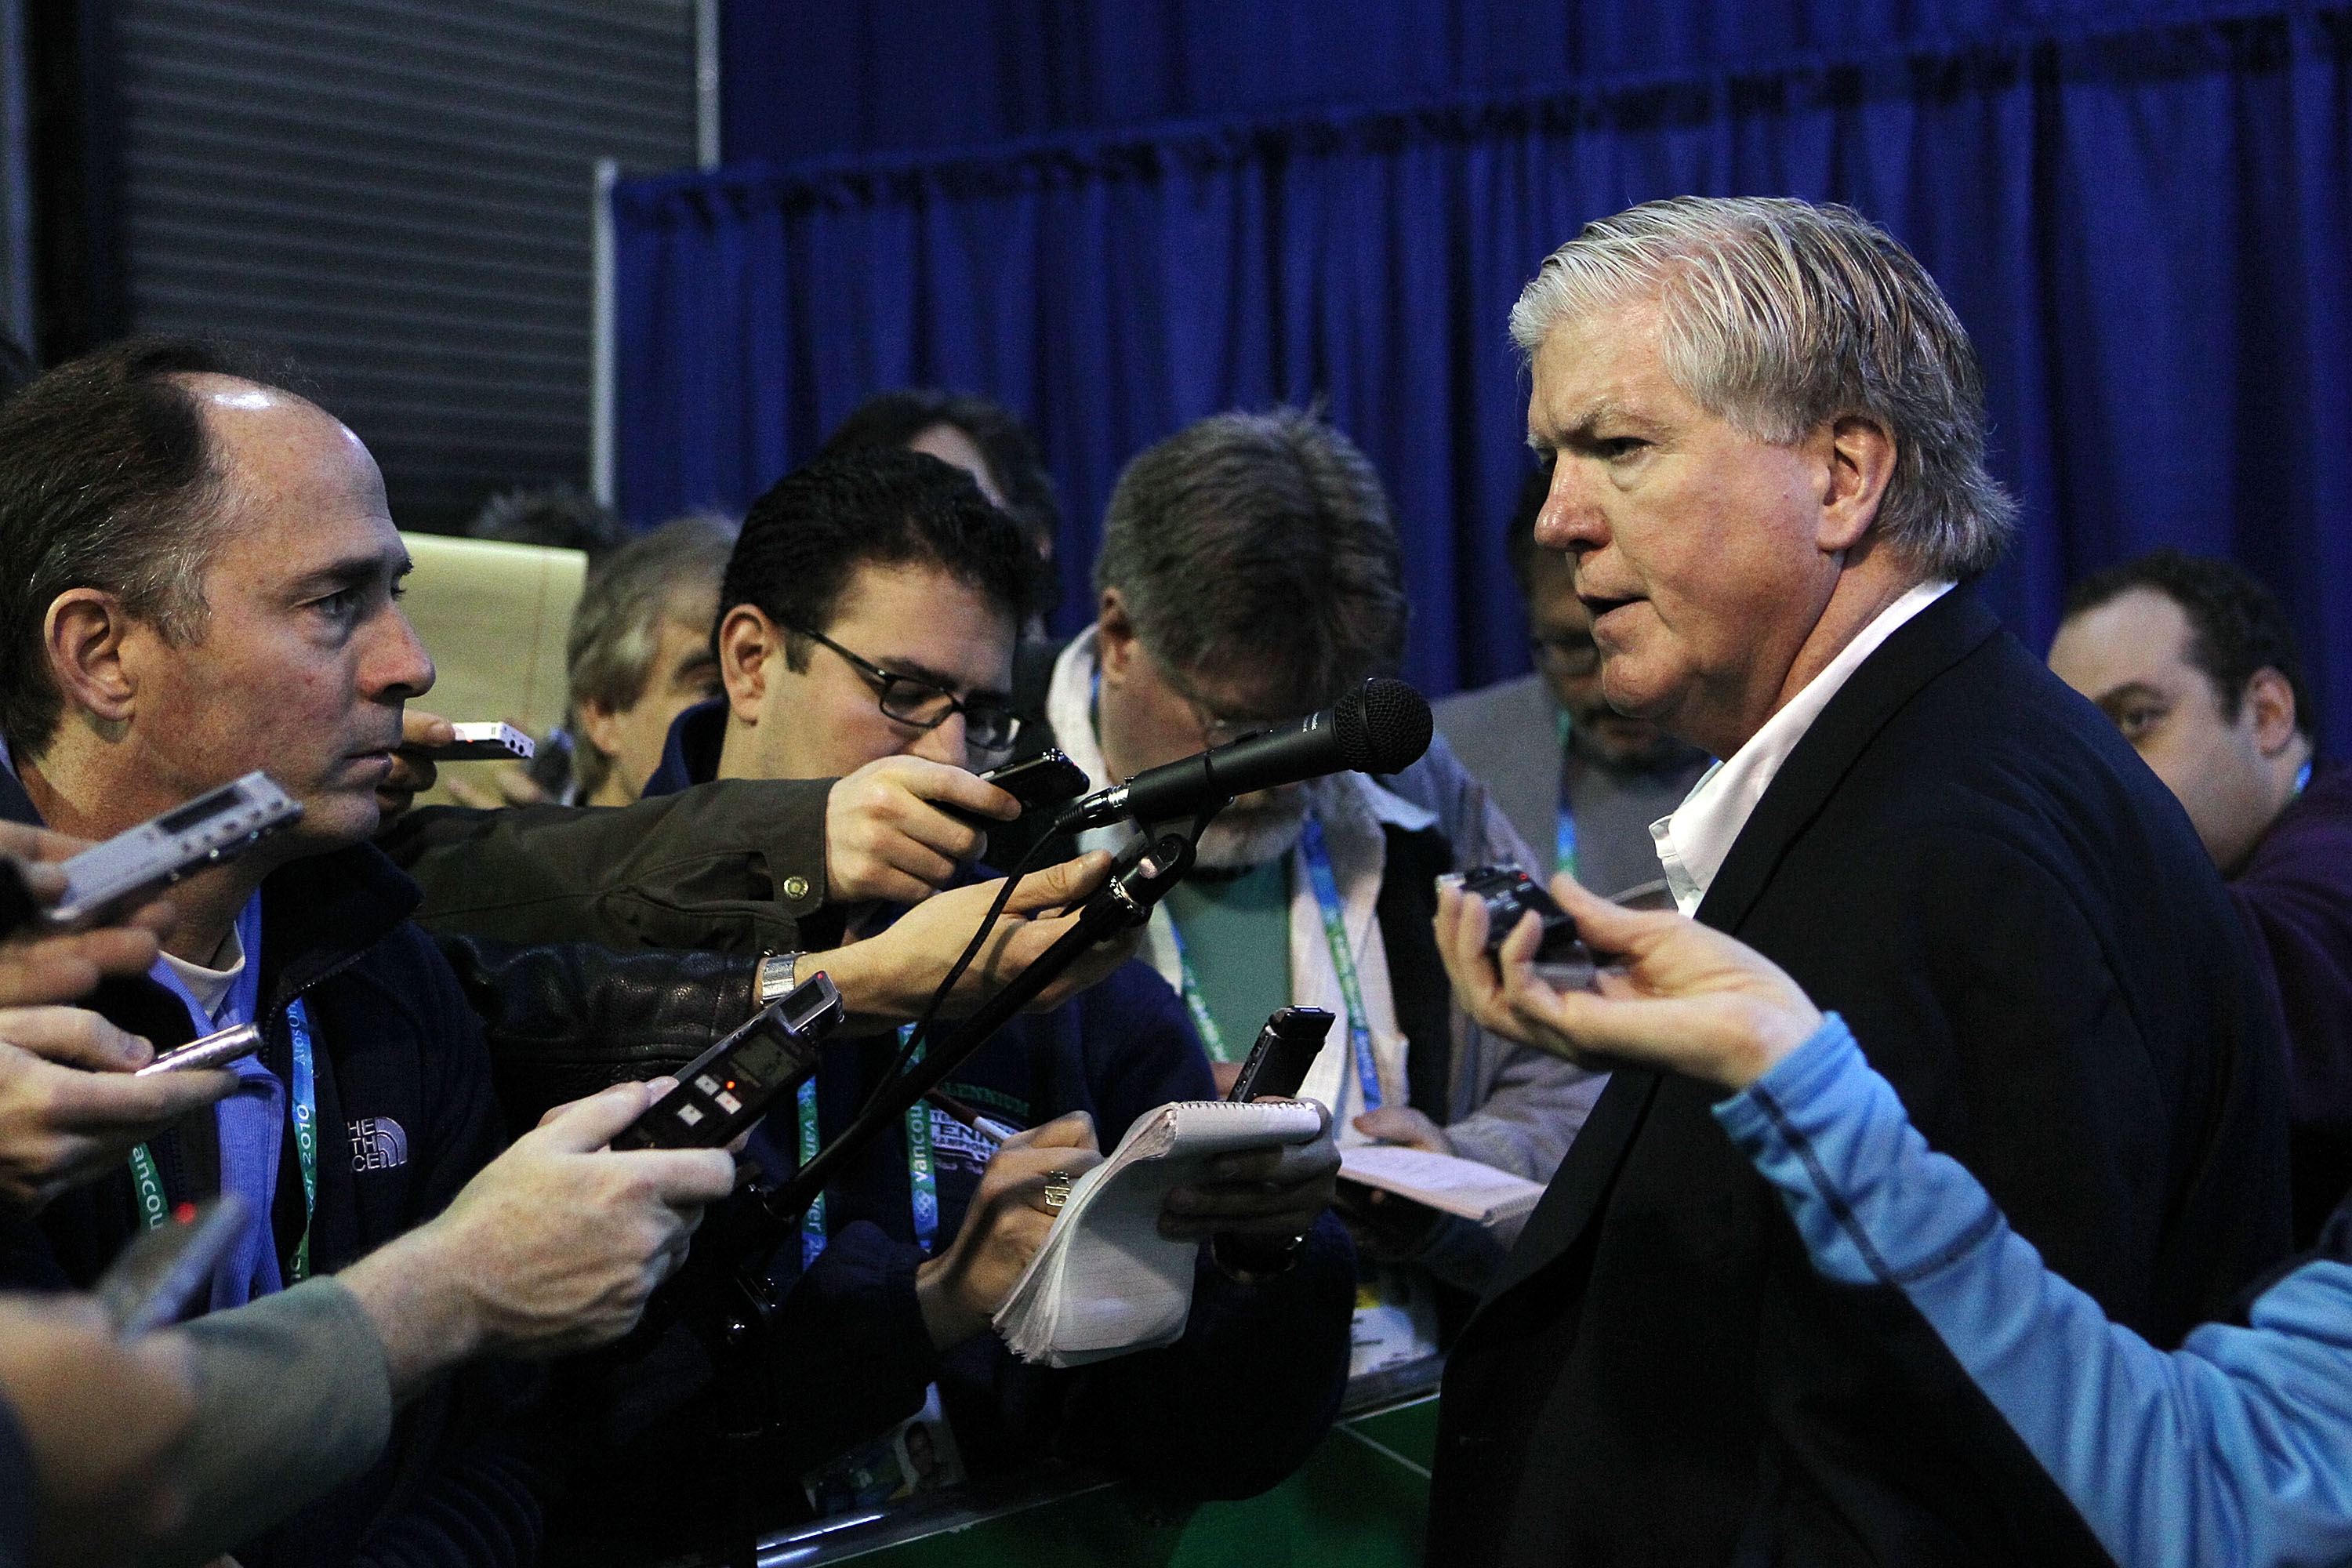 VANCOUVER, BC - FEBRUARY 22:  Hockey USA General Manager and Toronto Maple Leafs GM Brian Burke (R) speaks to the media prior to the start of the Women's USA vs. Sweden  women's semifinal game on day 11 of the Vancouver 2010 Winter Olympics at Canada Hock